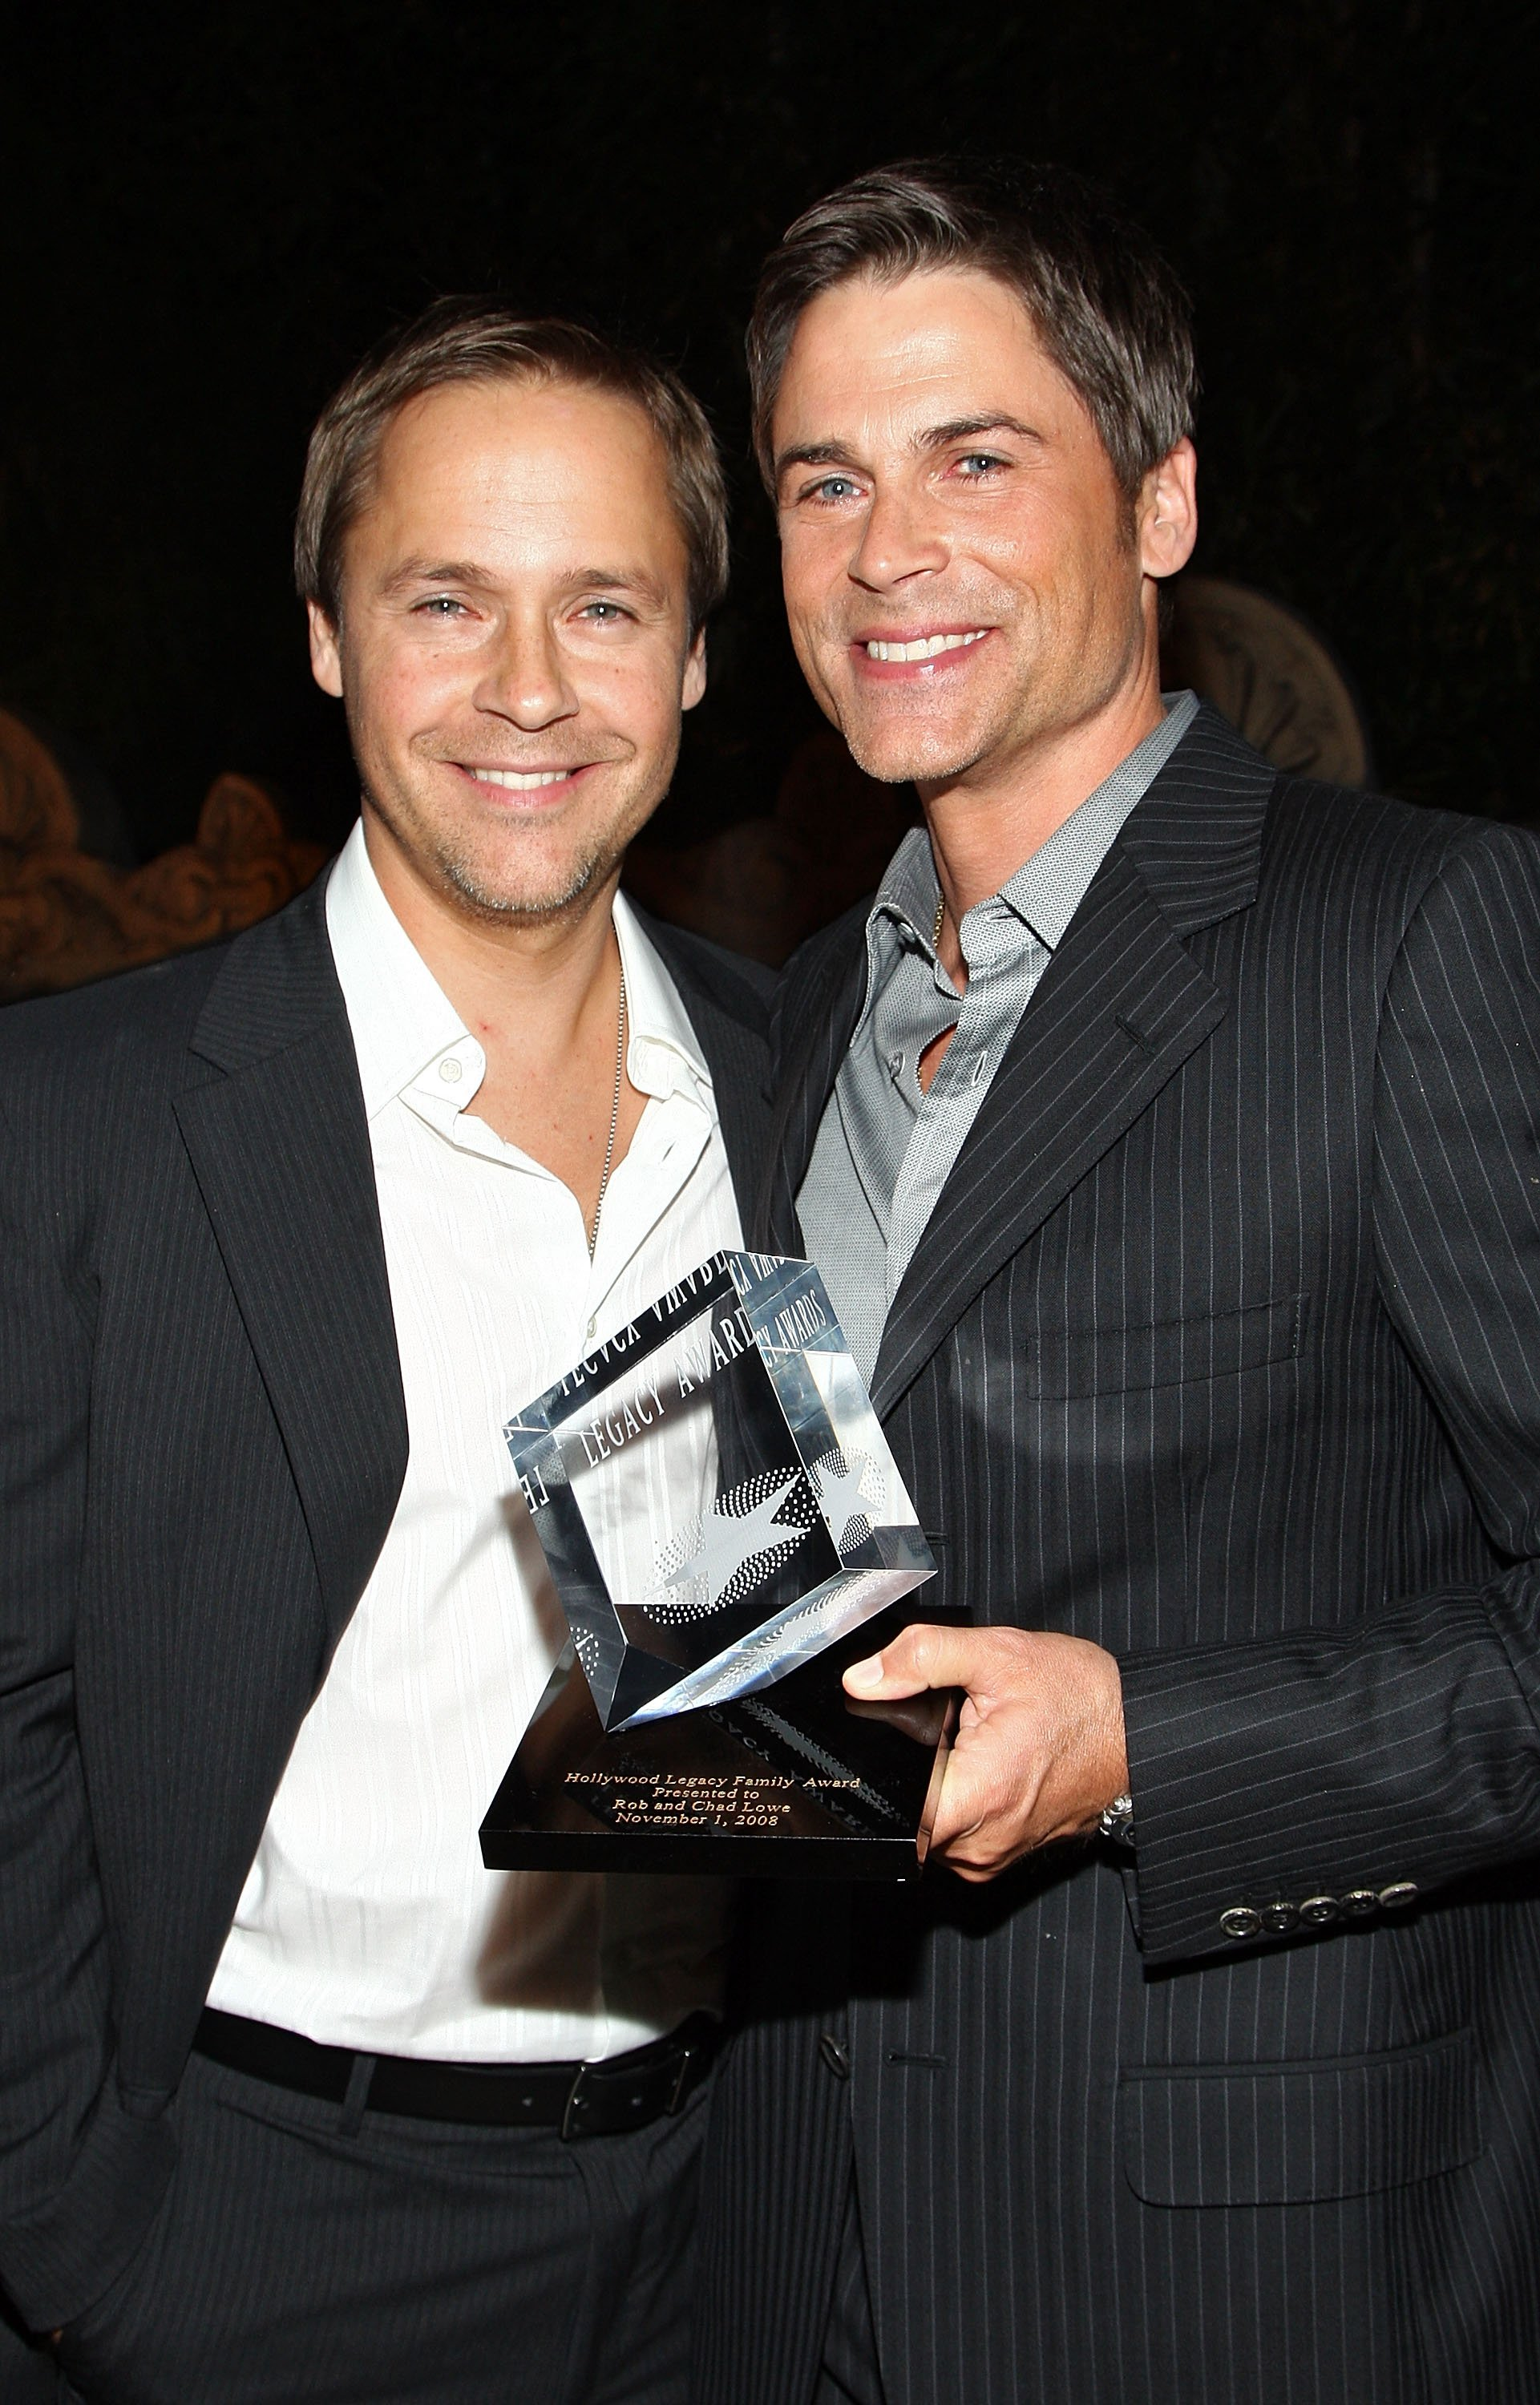 Chad (L) and Rob Lowe attend the Hollywood Entertainment Museum's Hollywood Legacy Awards XI held at the Esquire House Hollywood Hills on November 11, 2008, in Los Angeles, California. | Source: Getty Images.